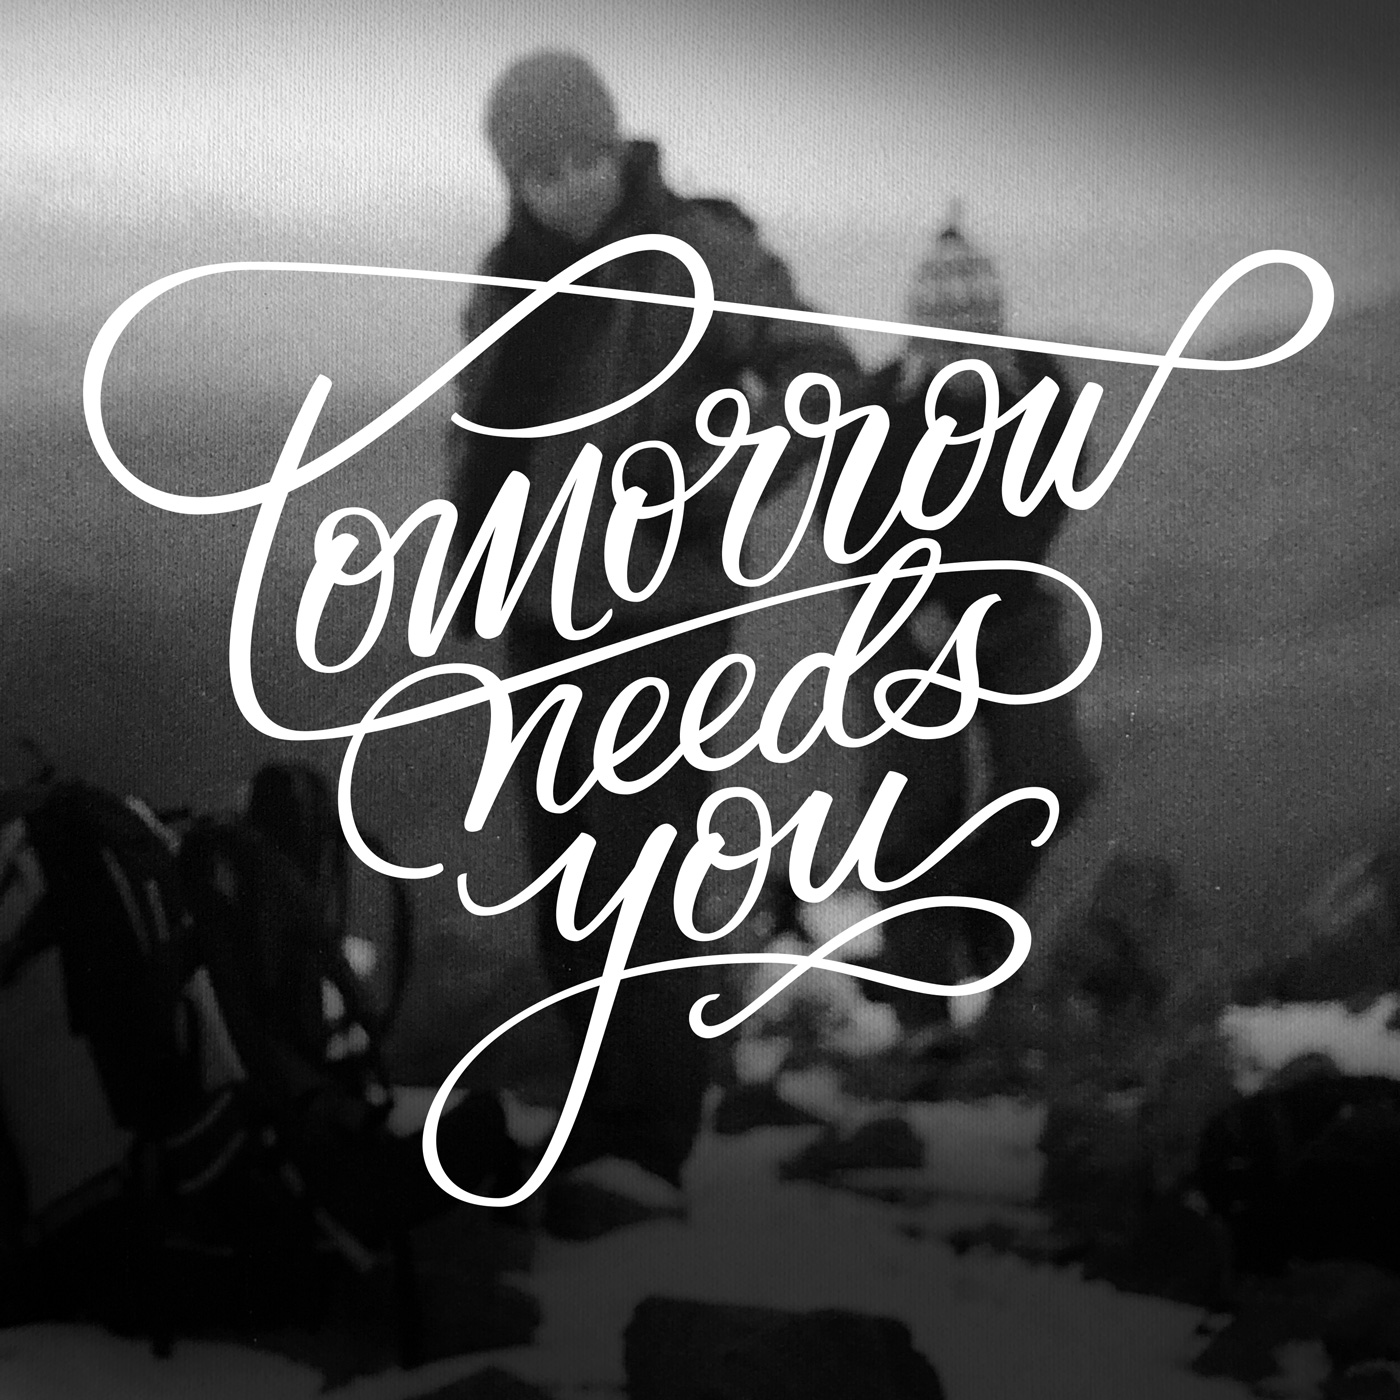 Tomorrow Needs You Lettering